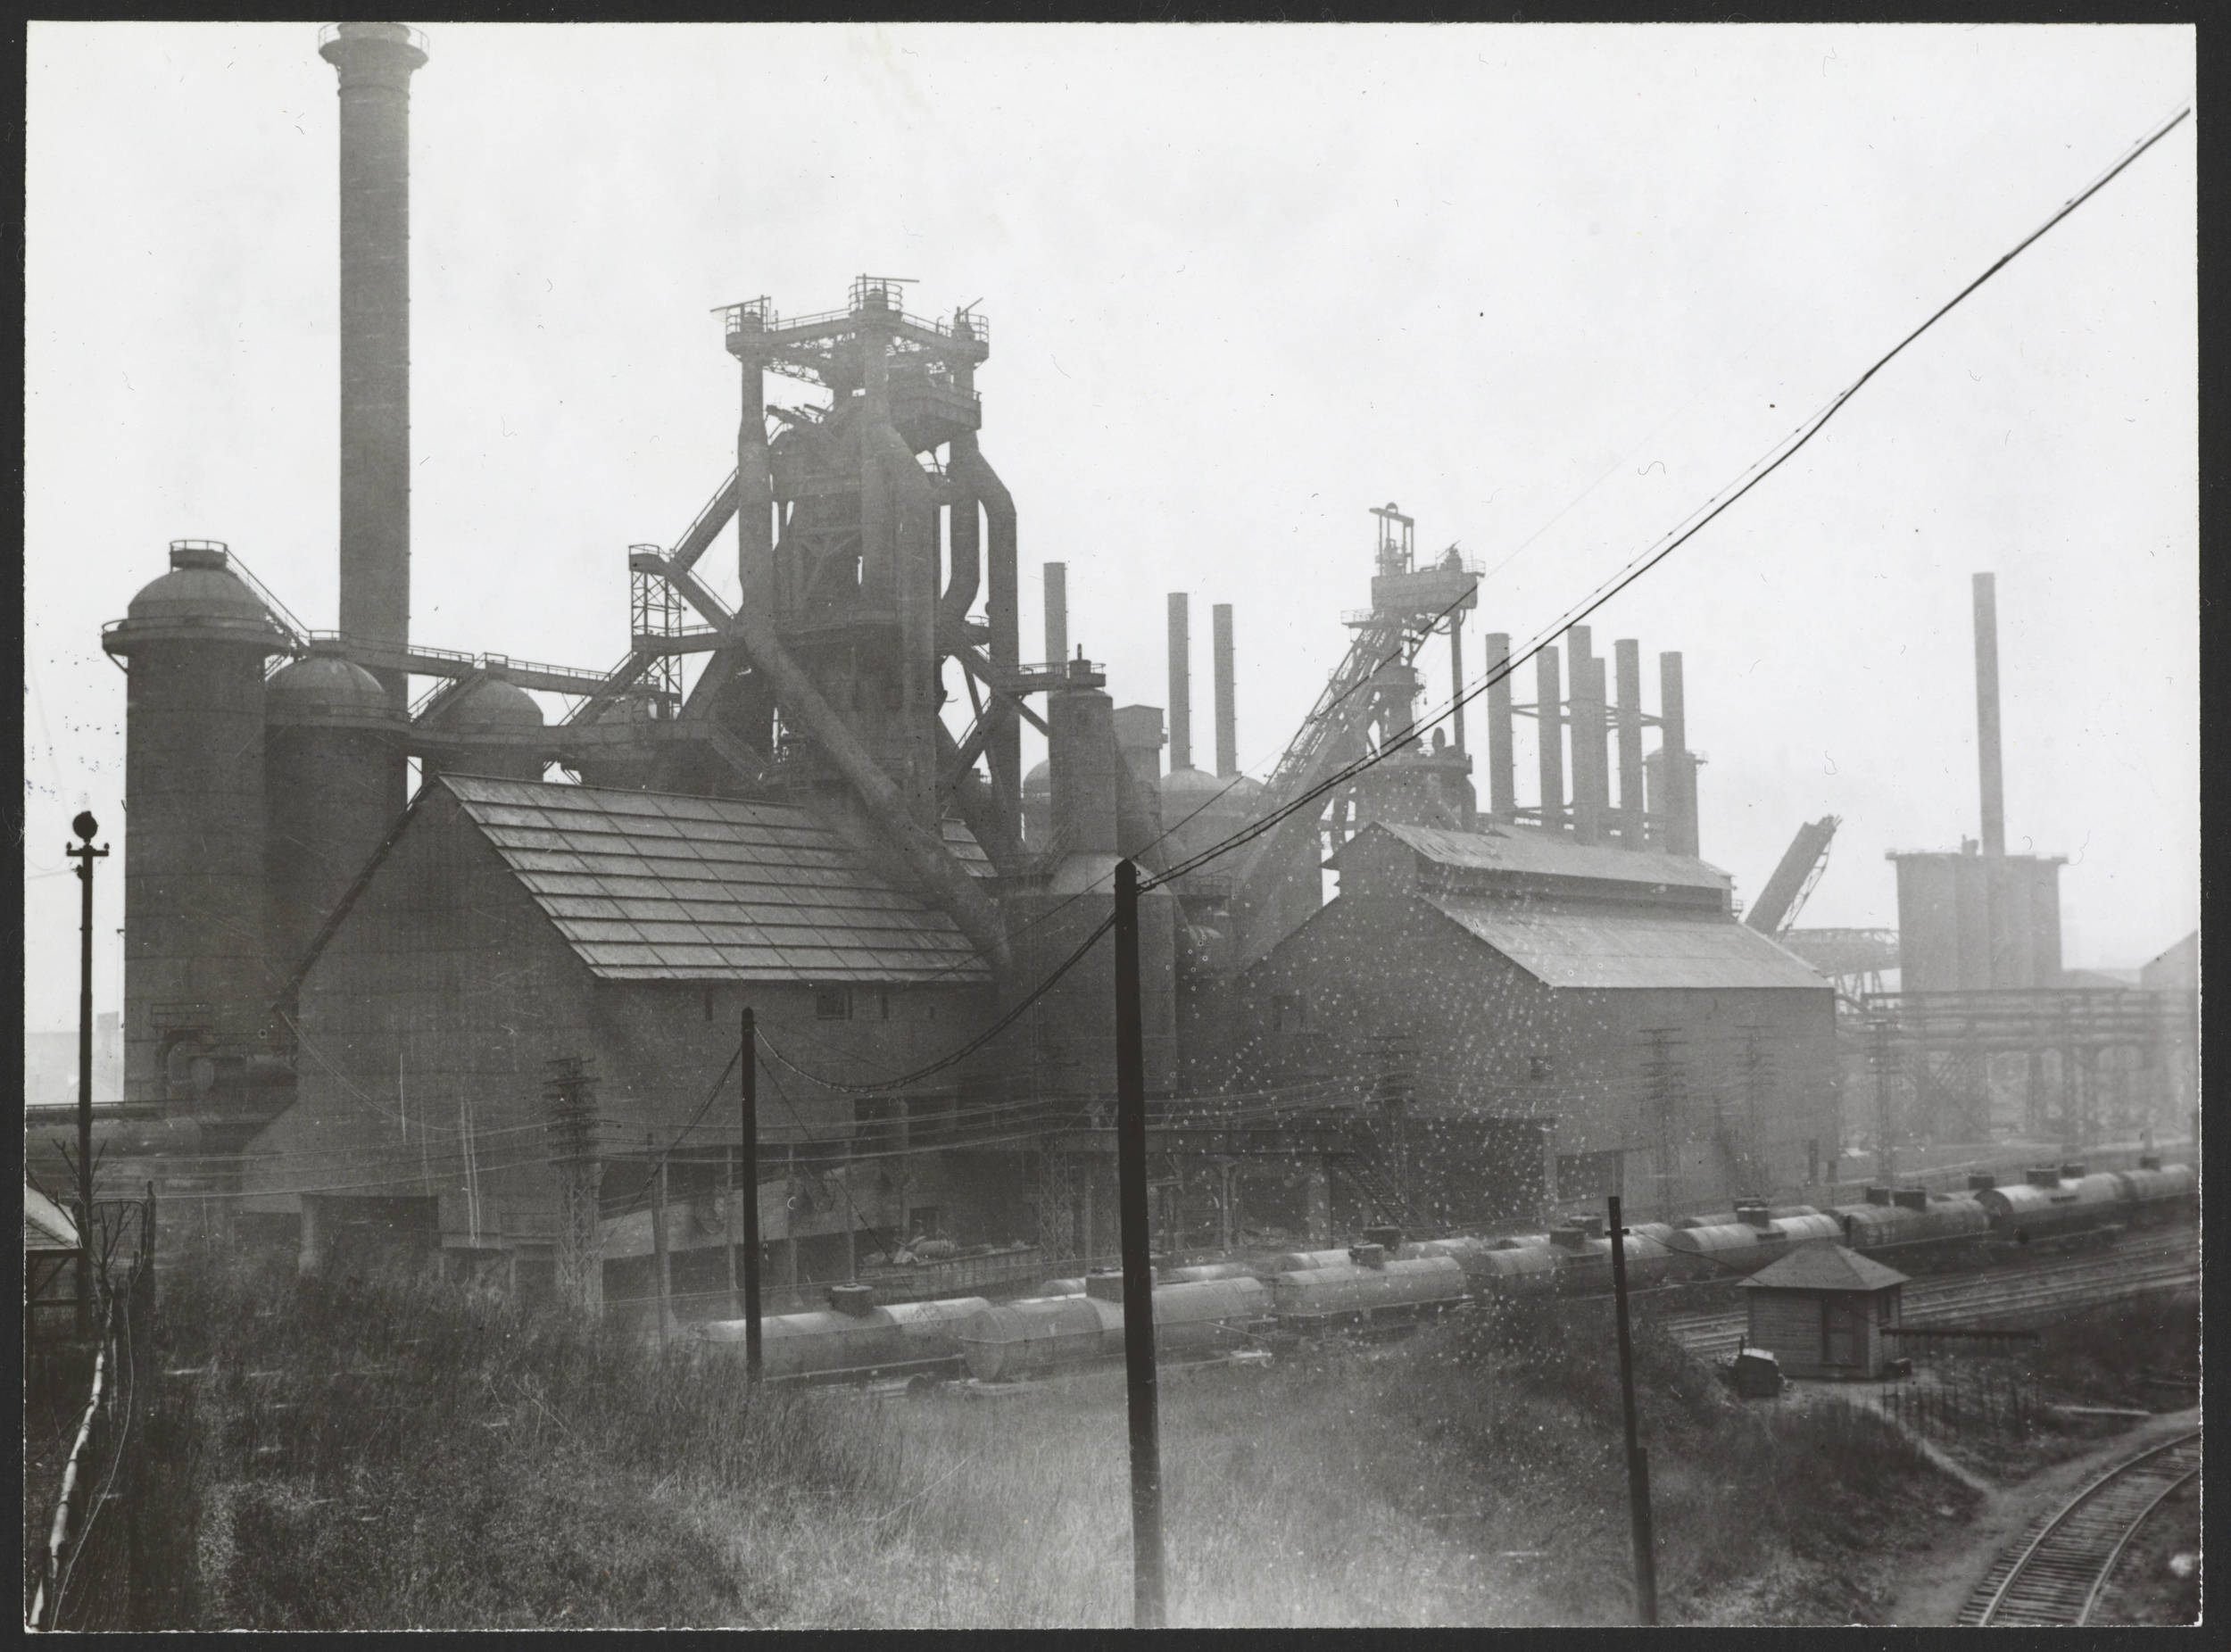 American_Steel_and_Wire_1935_CP02920.jpg